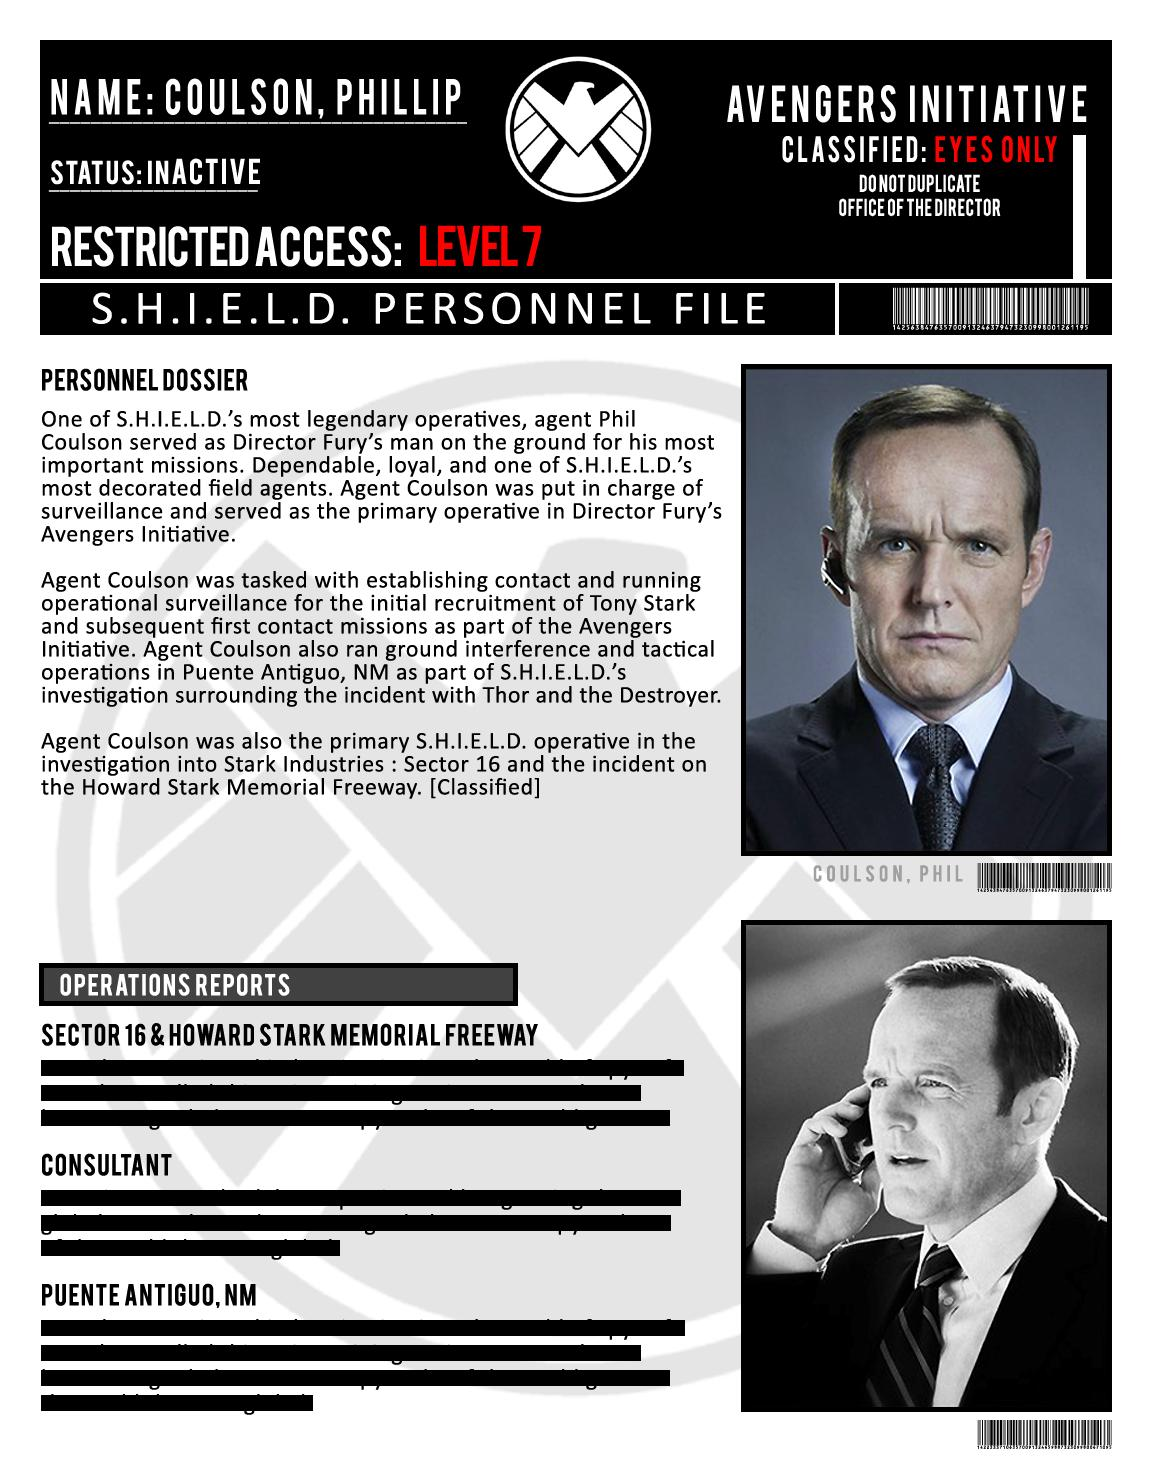 http://vignette4.wikia.nocookie.net/marvelcinematicuniverse/images/f/ff/Phil_Coulson_File.jpg/revision/latest?cb=20140902021105